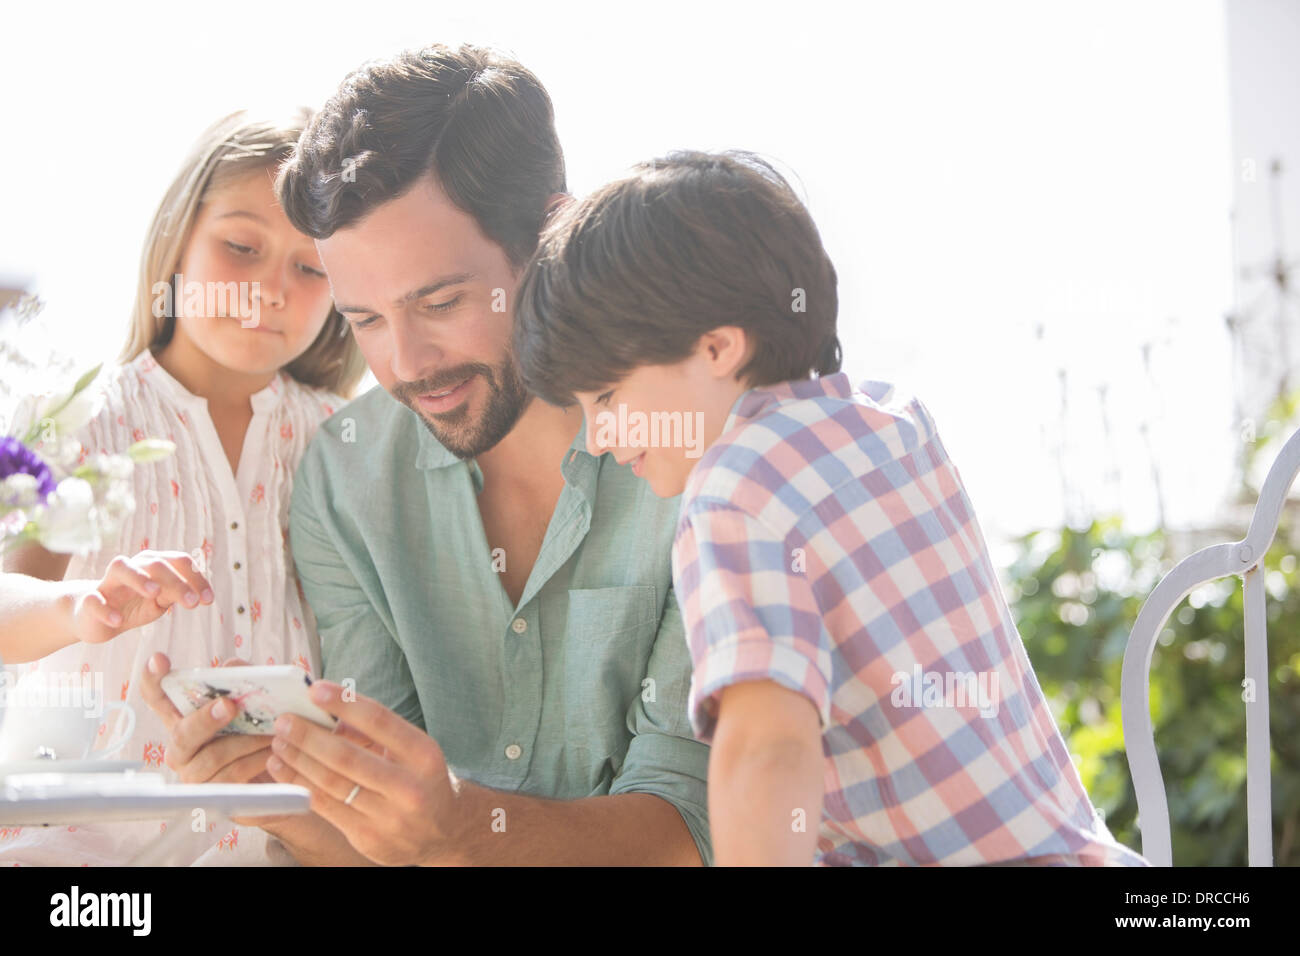 Father and children using cell phone outdoors - Stock Image